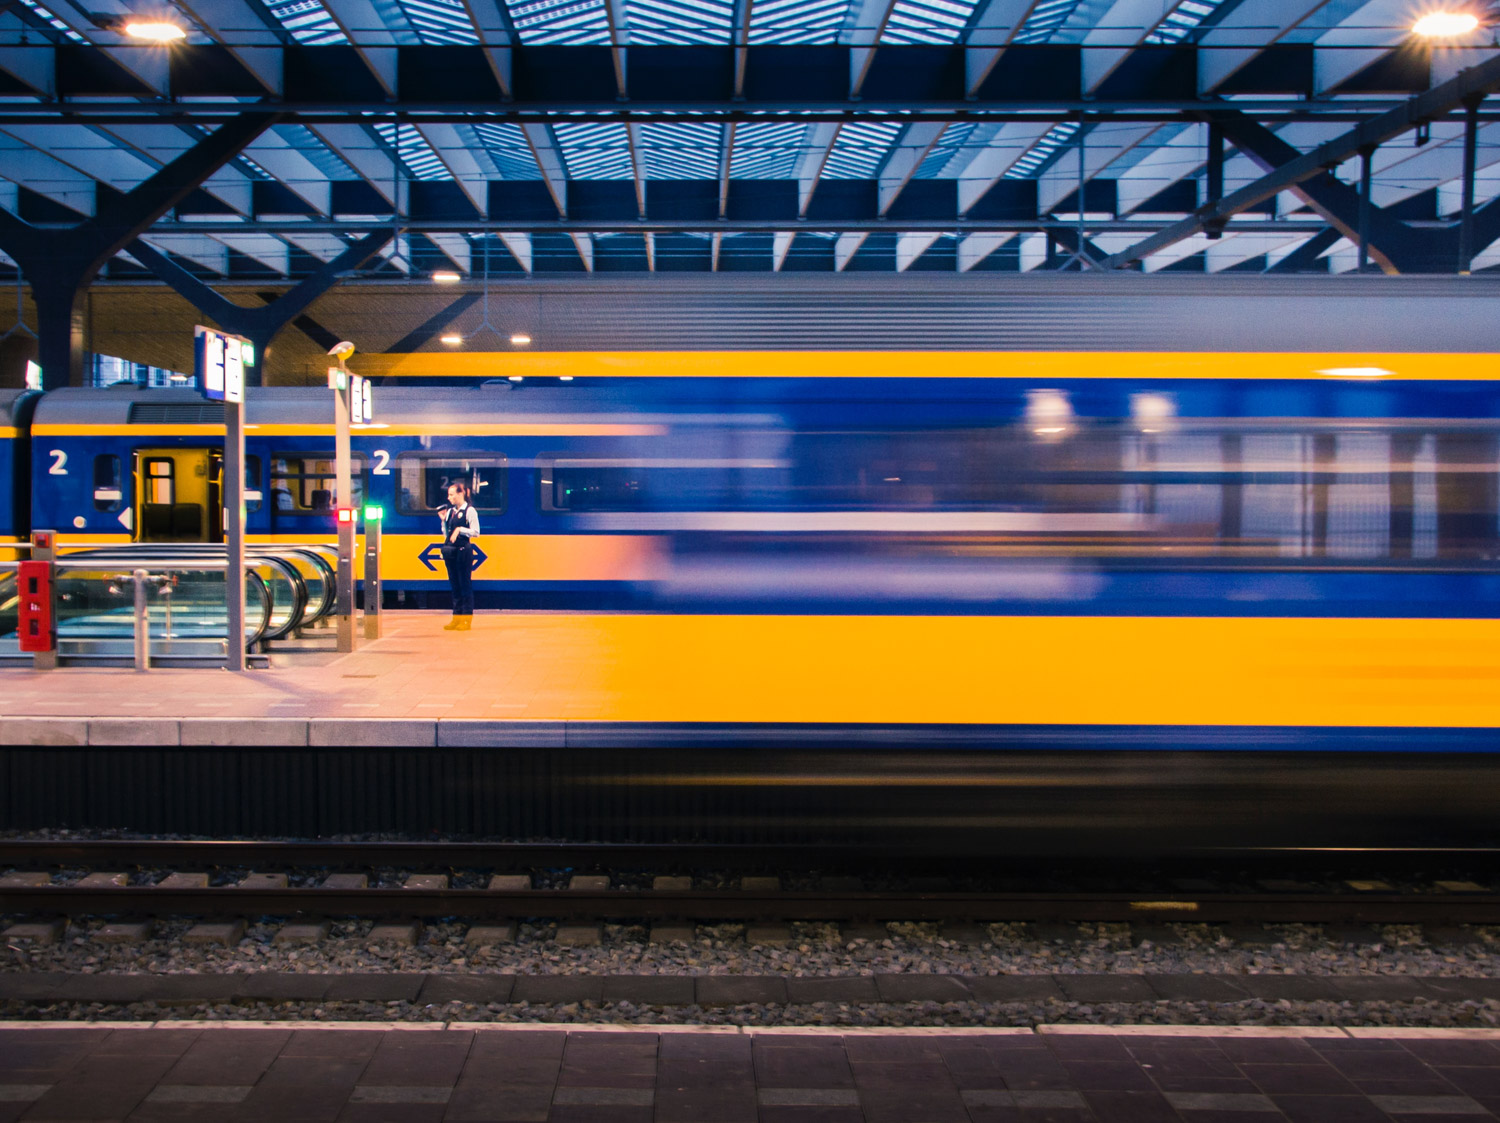 train moving fast with platform